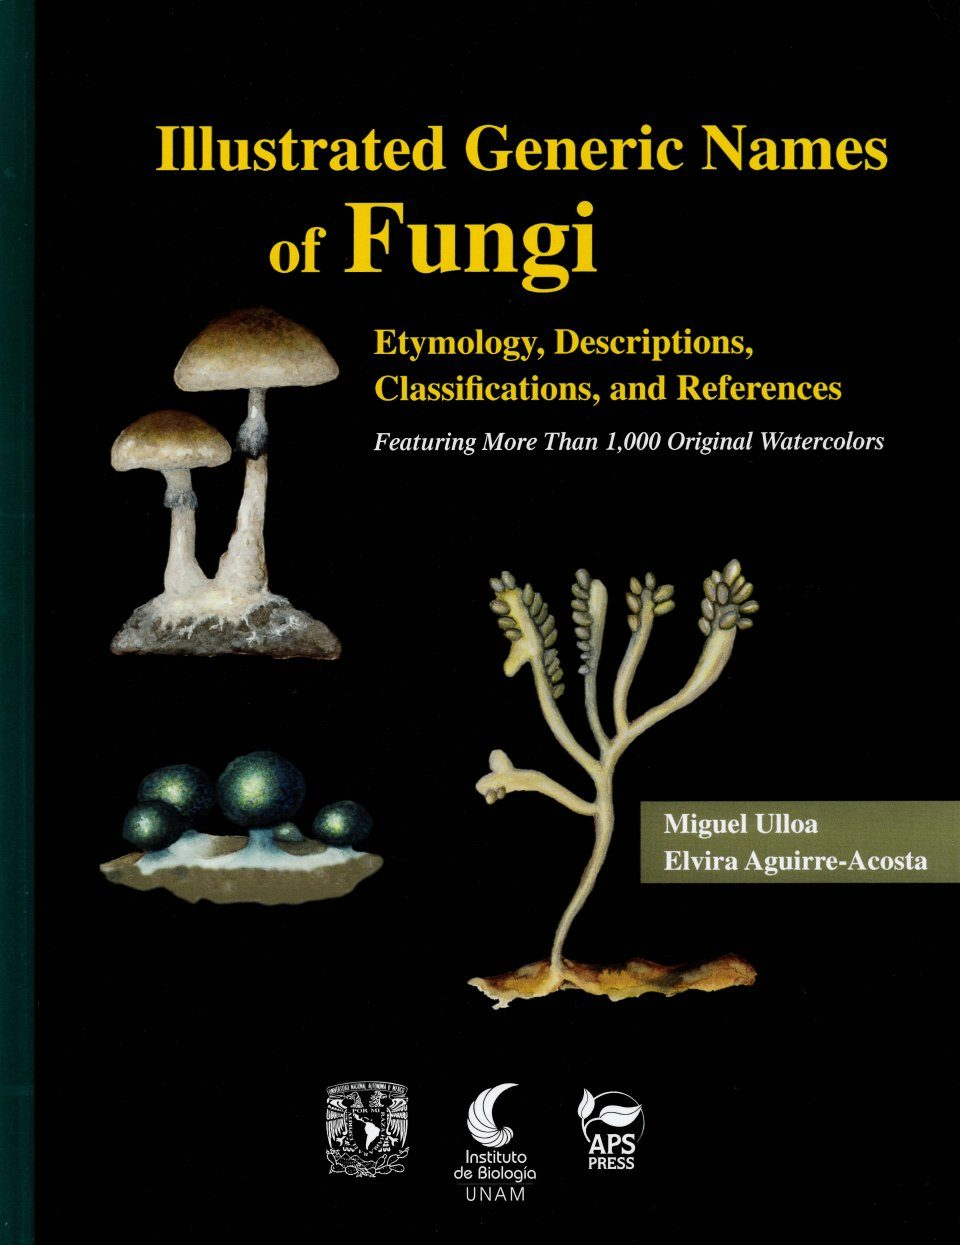 Illustrated Generic Names of Fungi Etymology, Descriptions, Classifications, and References